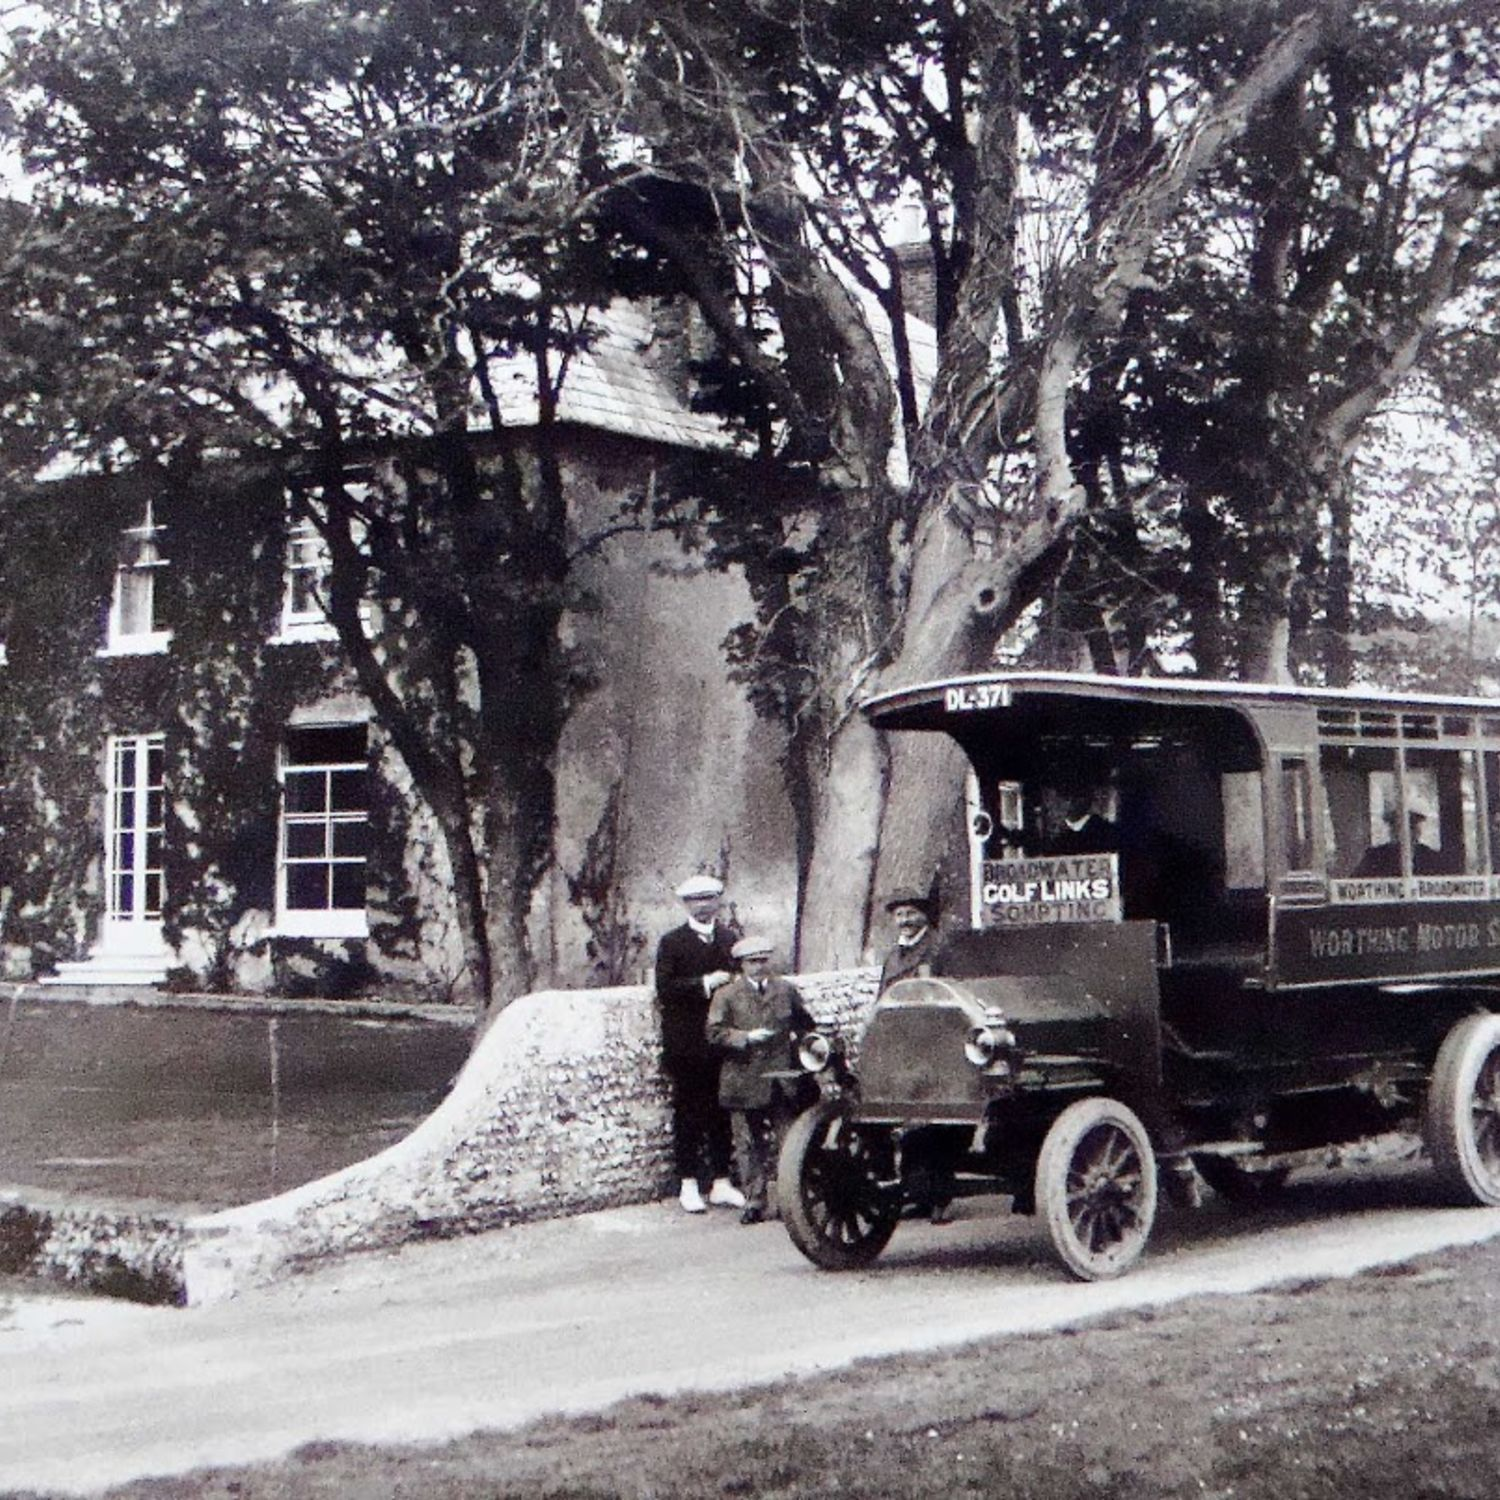 Worthing Motor Services provided a bus with a route that included Broadwater, Worthing Golf Links an